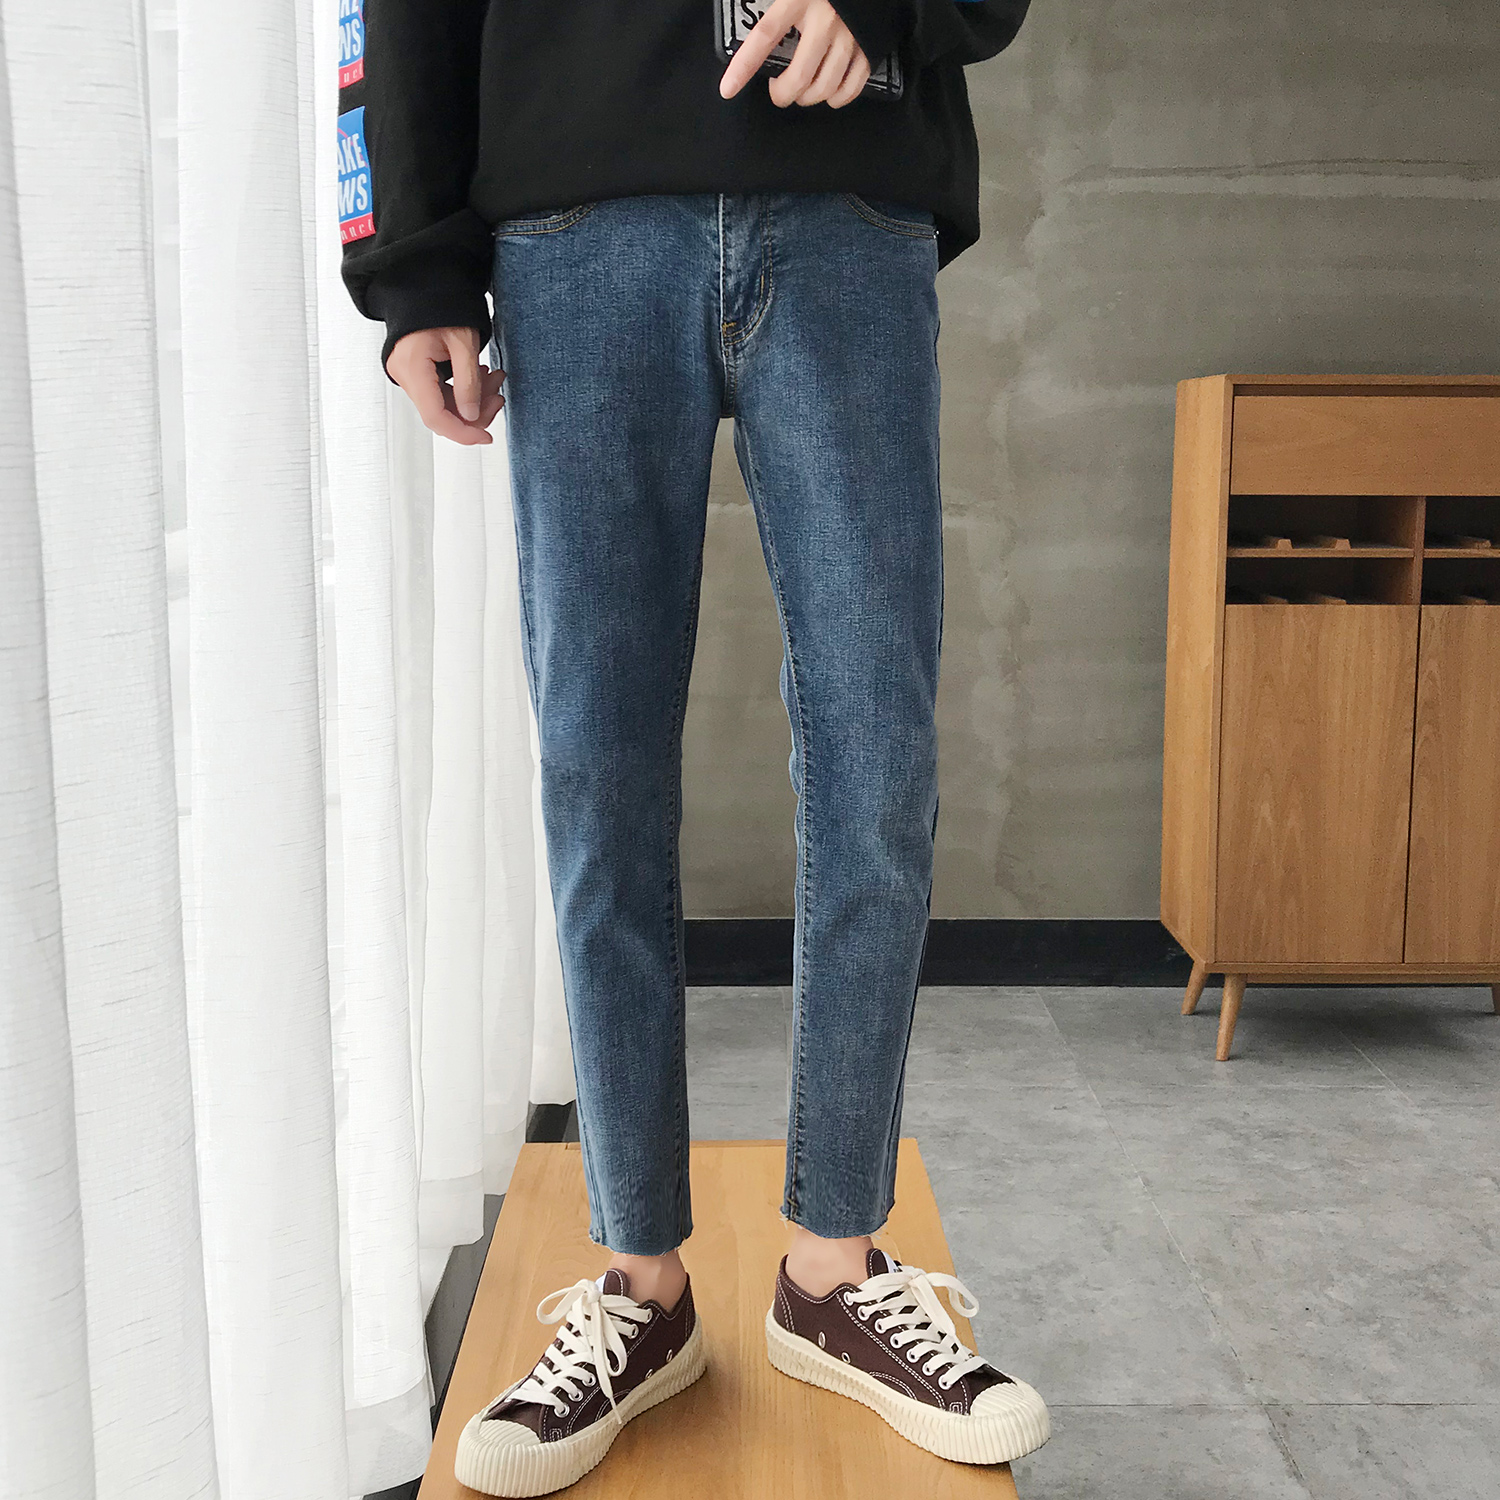 2020 Japanese Style Men's Solid Color Stretch Slim Fit Classic Skinny Jeans Blue Casual Pants Biker Denim Trousers